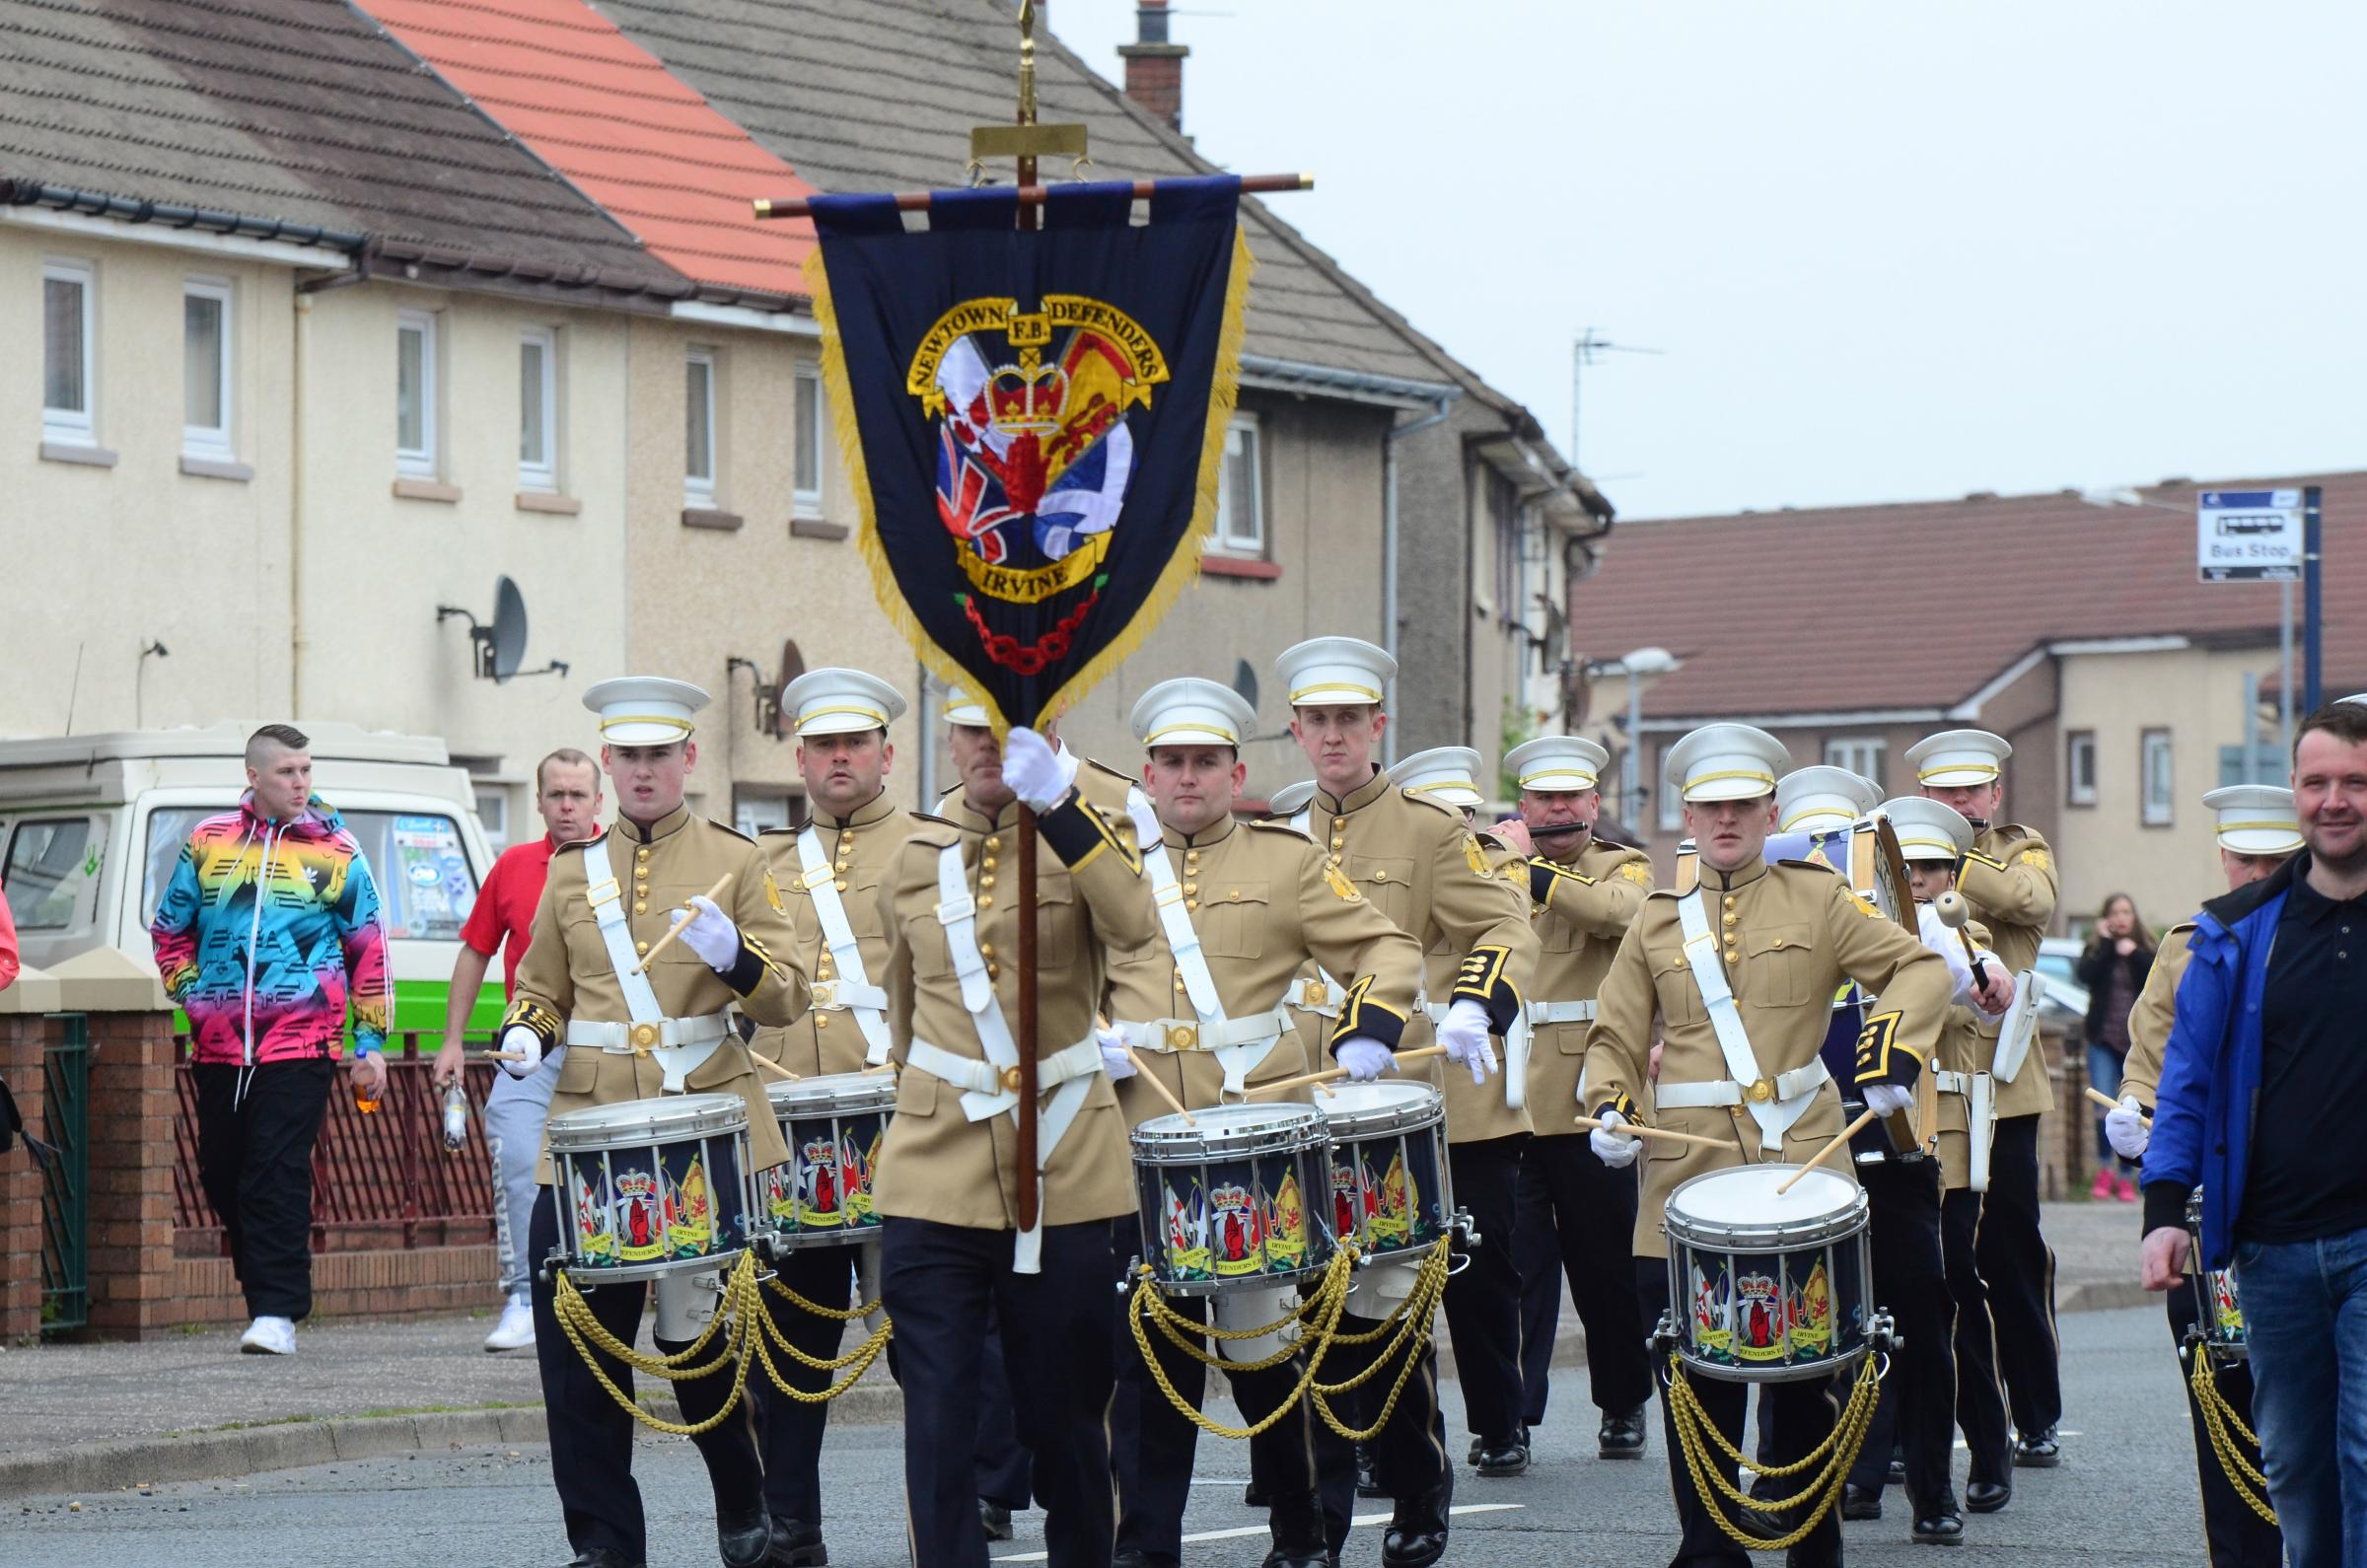 Newtown Defenders' annual flute band parade this weekend